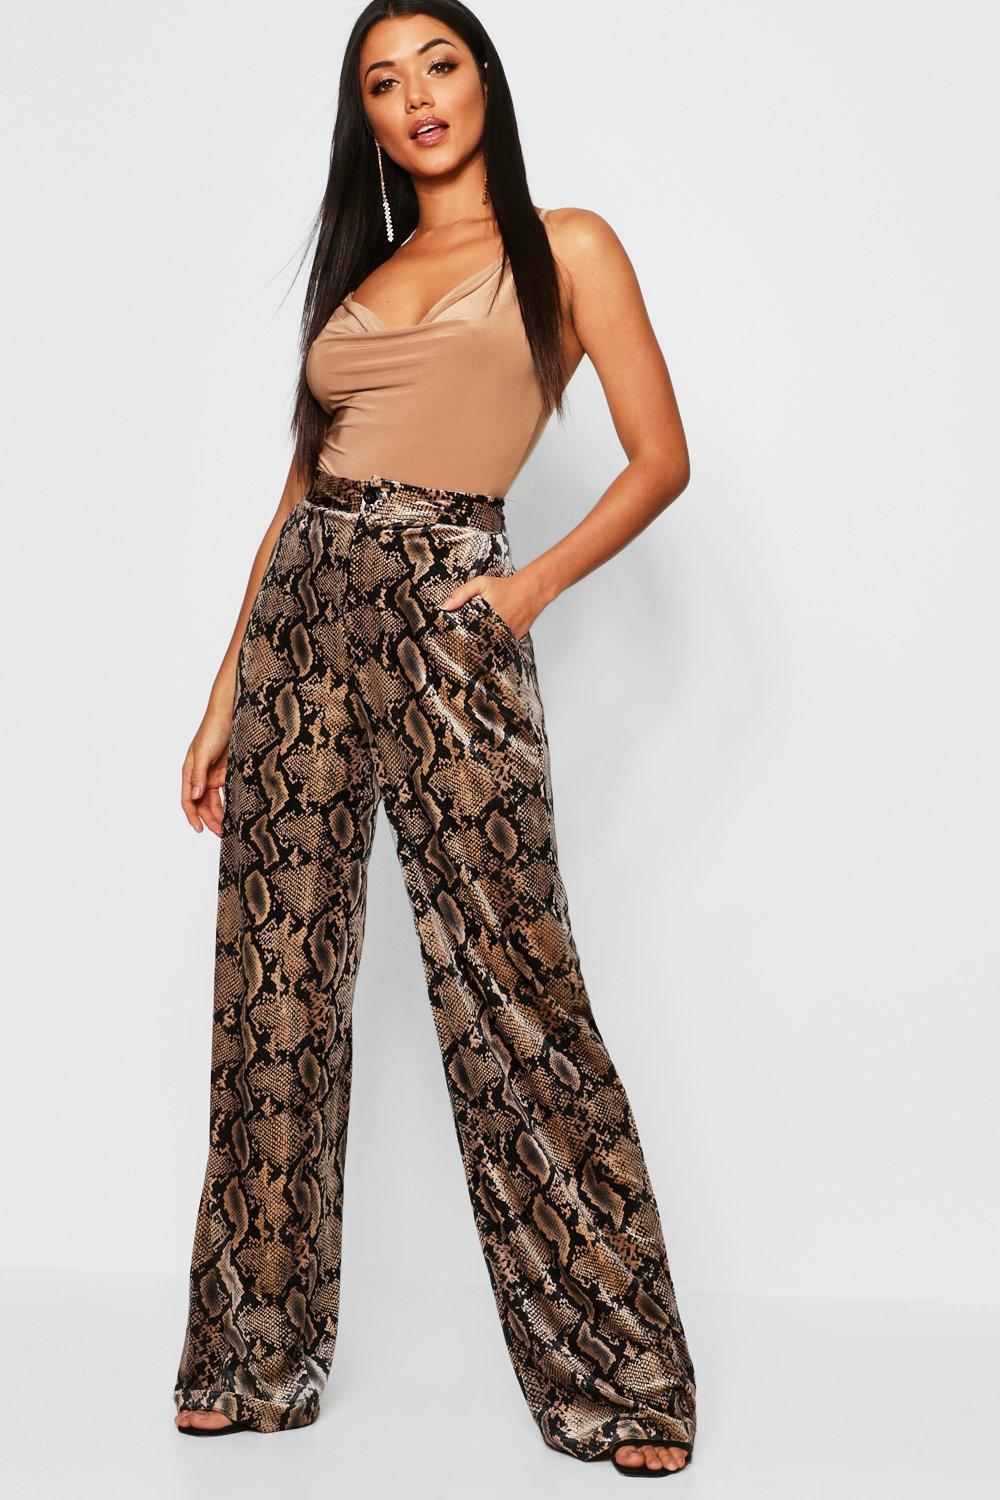 cd071fab843a Boohoo. Women's Brown Snake Print Velour Wide Leg Trousers